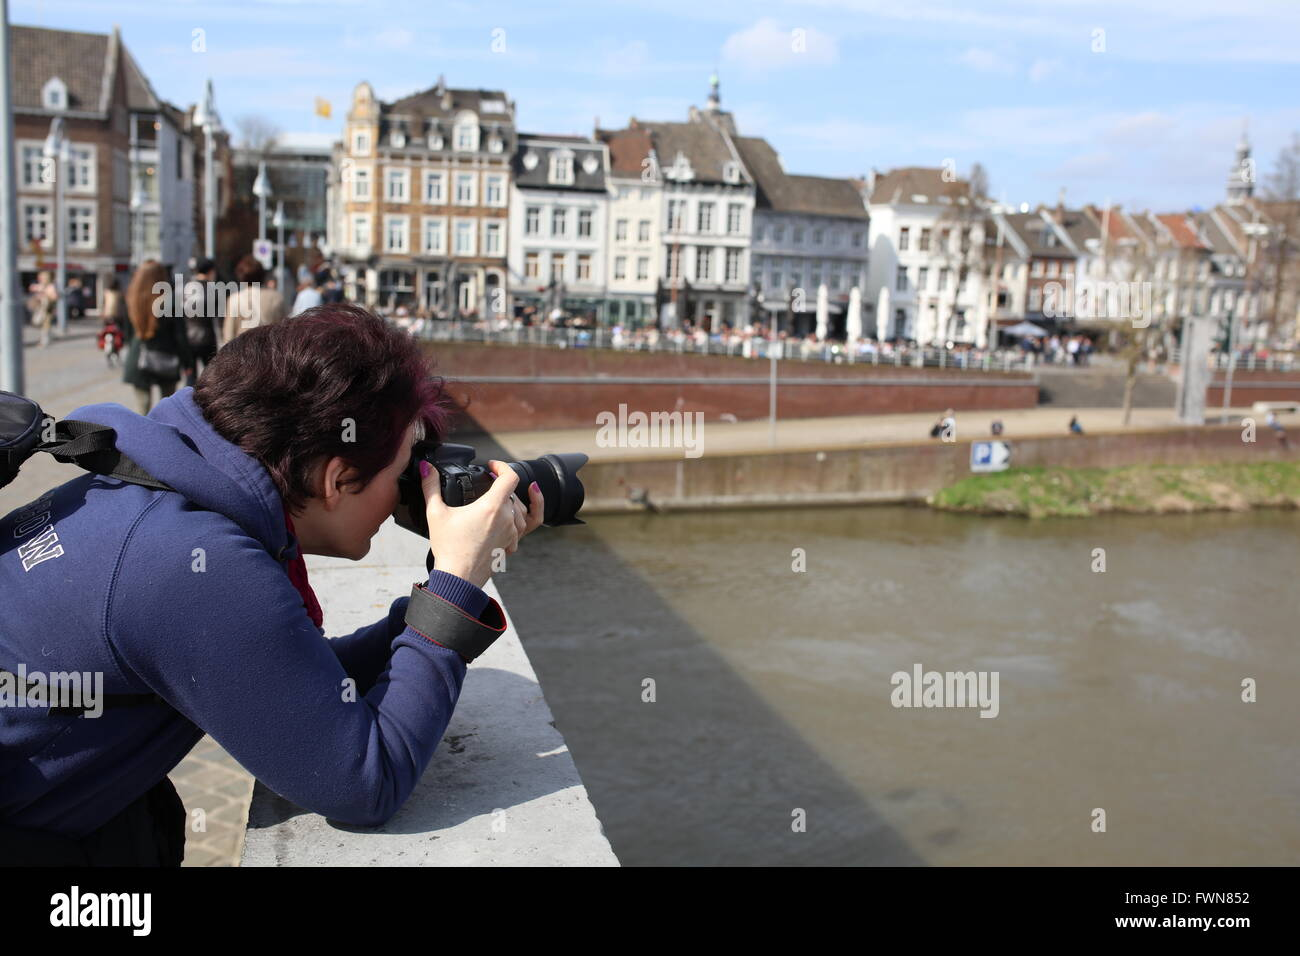 Maastricht, Netherlands, tourist taking photo from bridge, model release possible - Stock Image